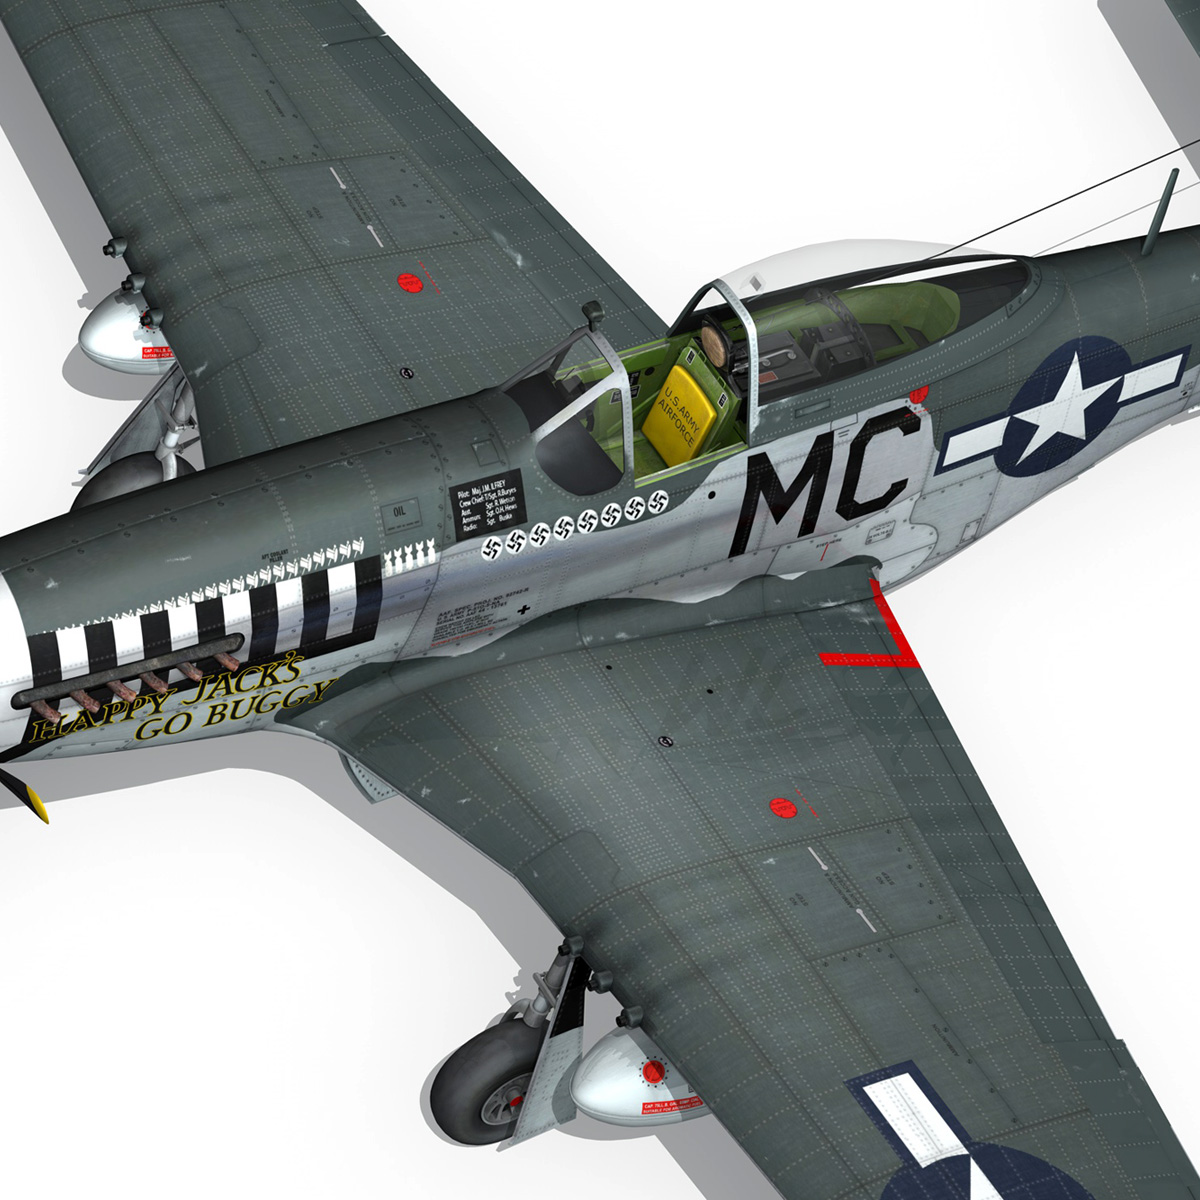 north american p-51 mustang – happy jacks go buggy 3d model fbx c4d lwo obj 280377